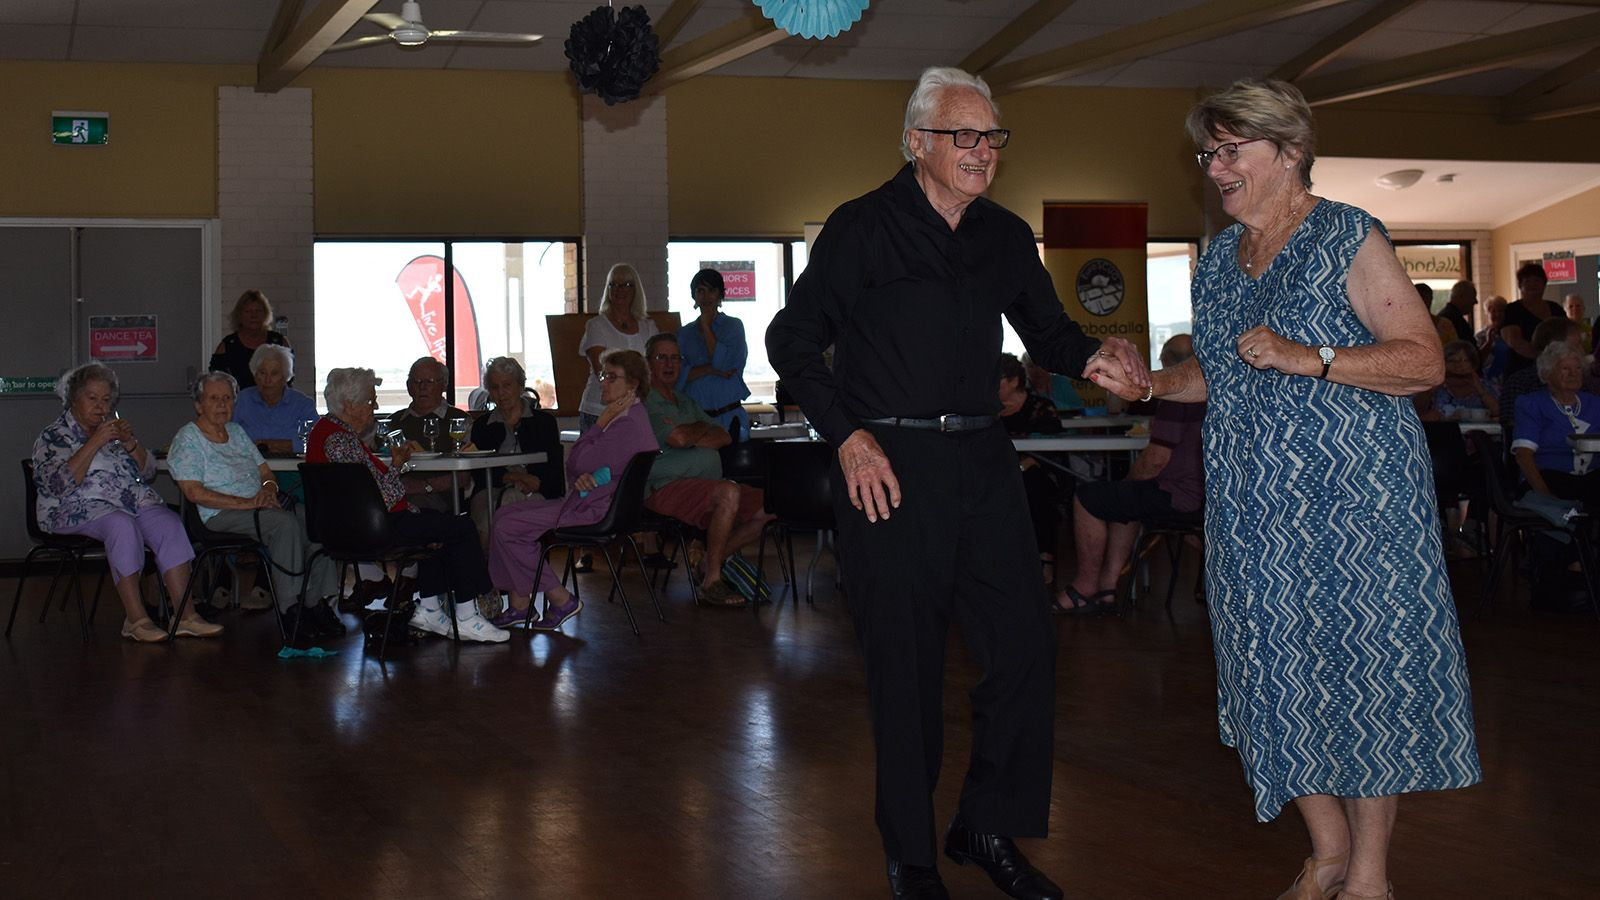 An older man and woman dancing at a social event banner image